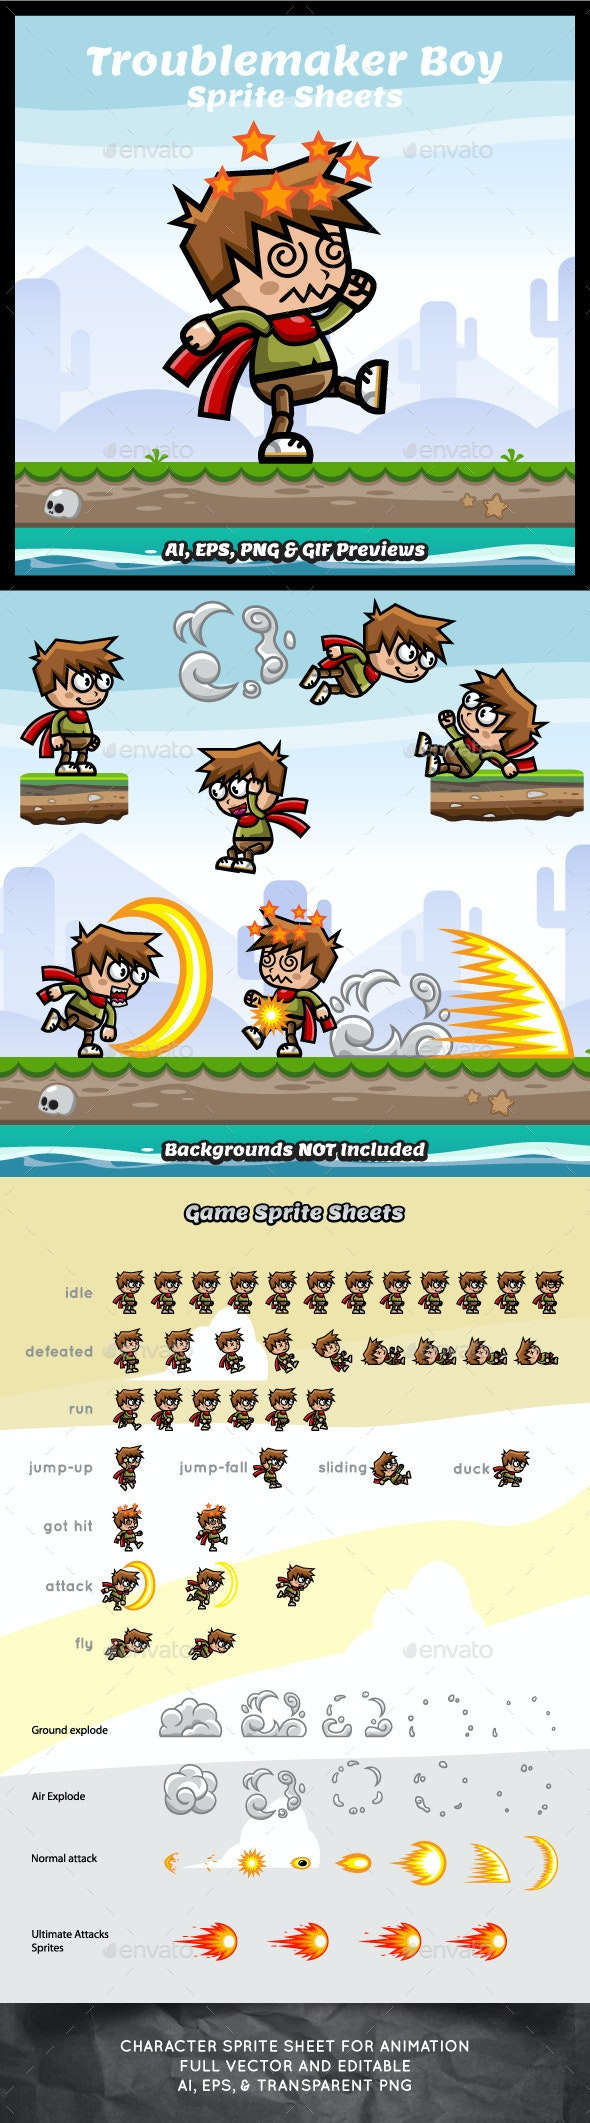 Troublemaker Boy Game Asset Sprite Sheets - Sprites Game Assets